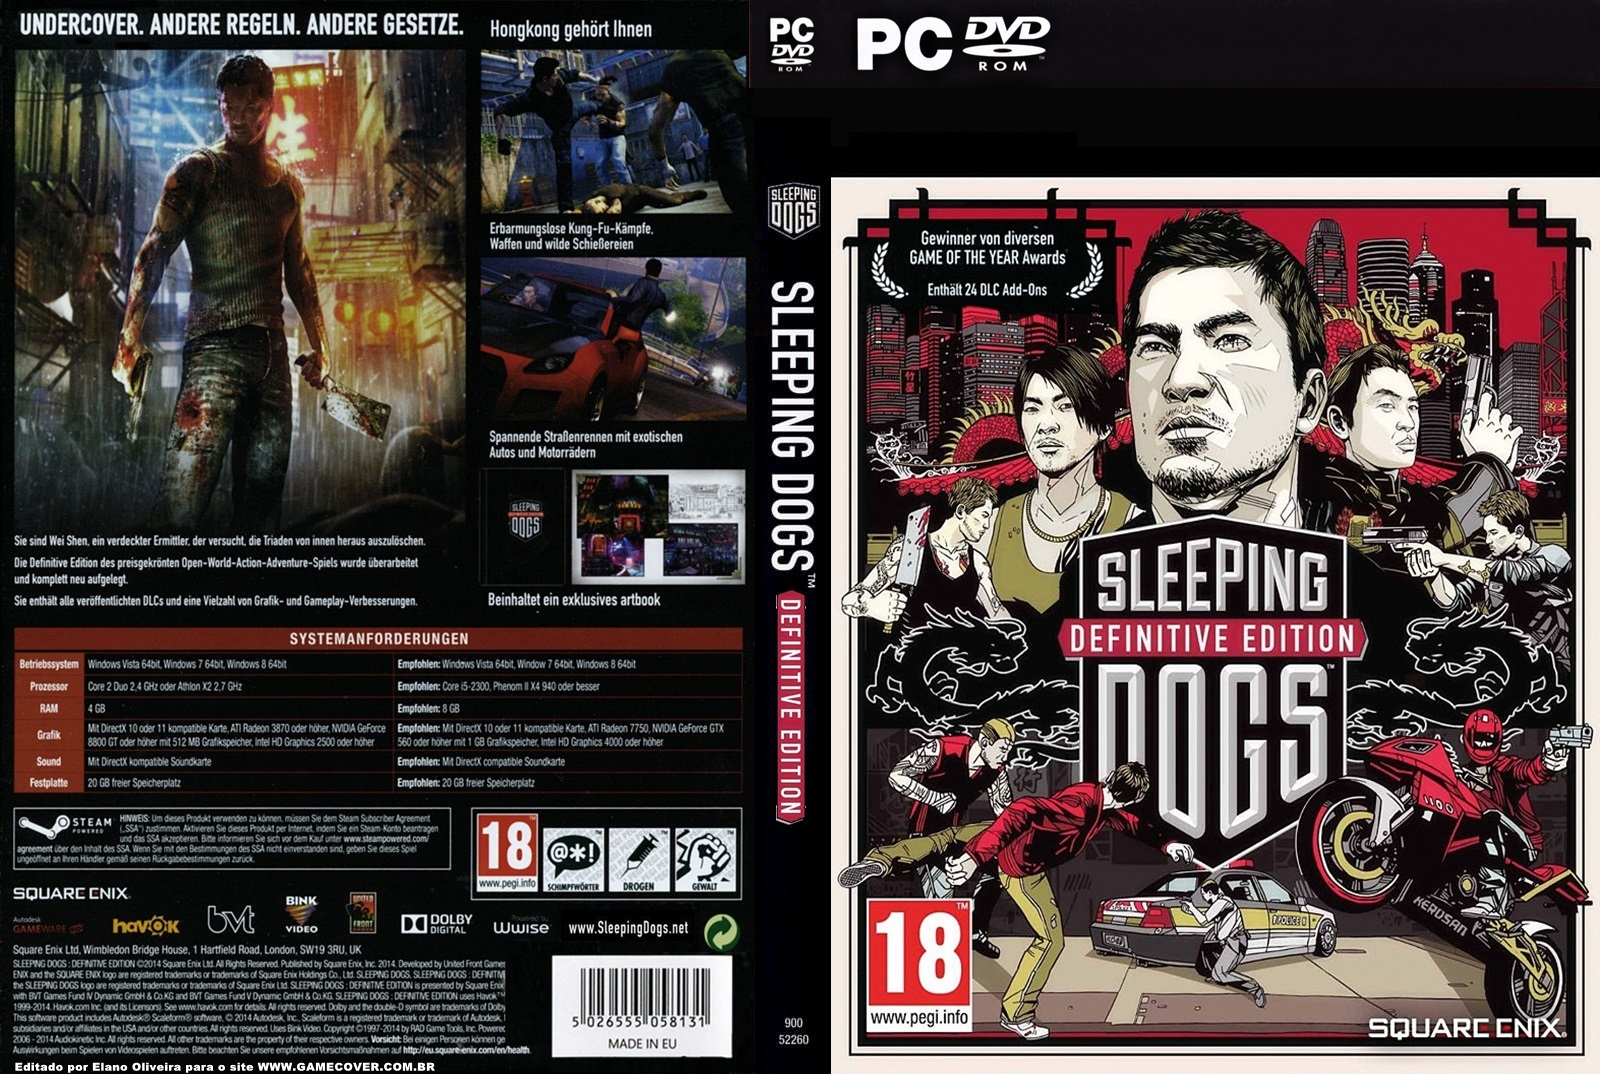 Sleeping Dogs Definitive Edition Zawrotna Pr Ef Bf Bddko